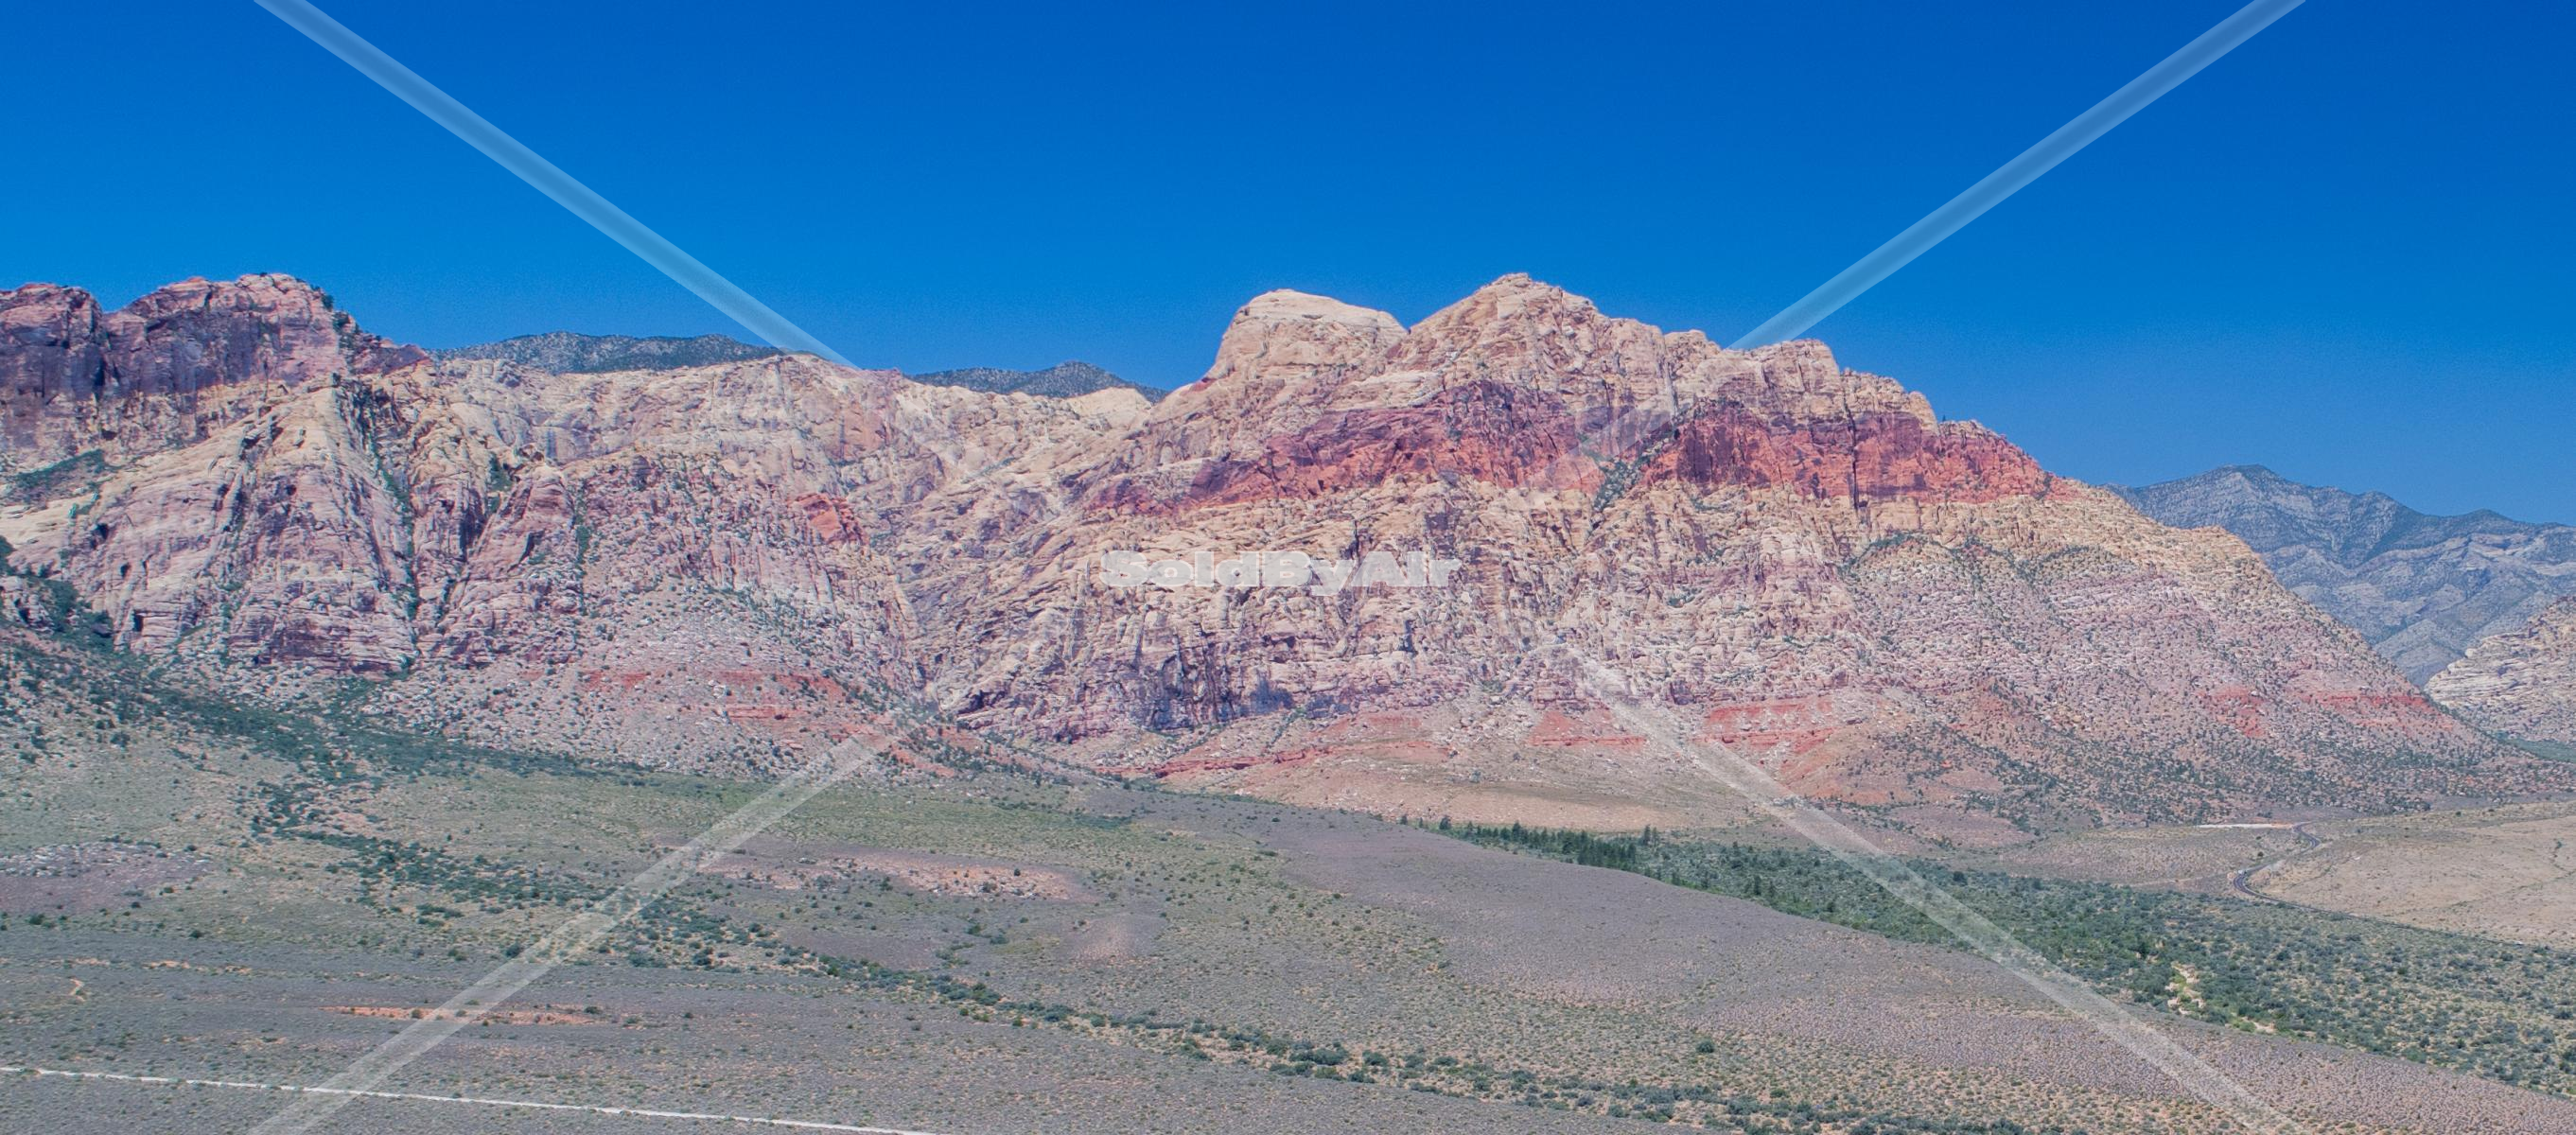 Drone Photo of Red Rock in Las Vegas Nevada